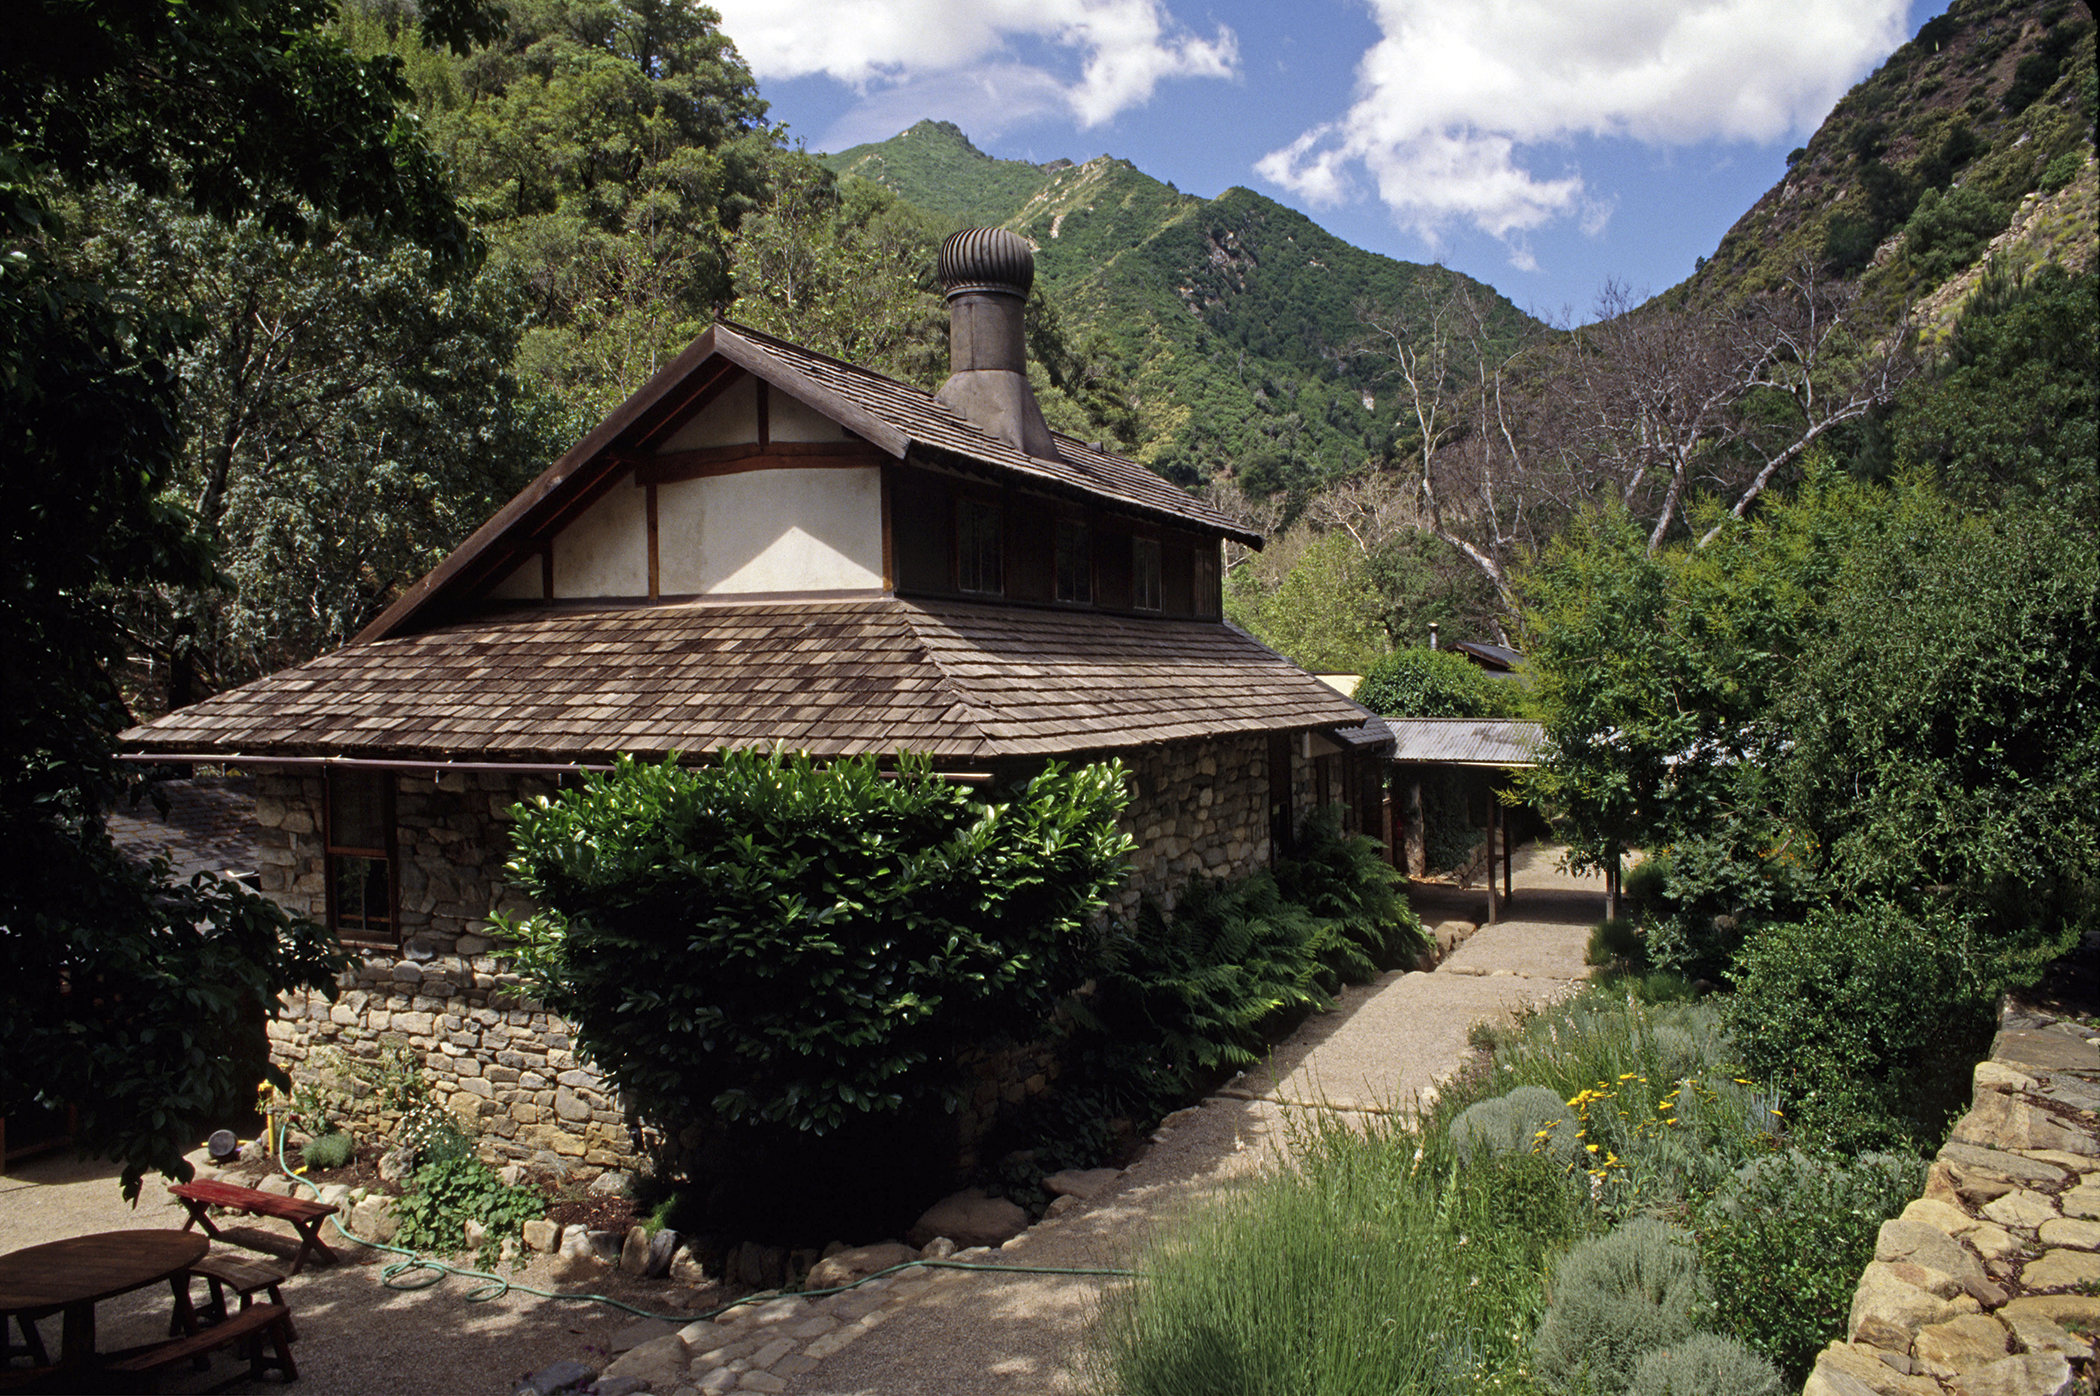 5. Tassajara, California:  The median household income in this community about 40  miles east of San Francisco is $135,672, but if residents get stressed out from earning all that money, they can relax in hot spring pool at a Zen Buddhist retreat nestled deep in the Carmel Valley.